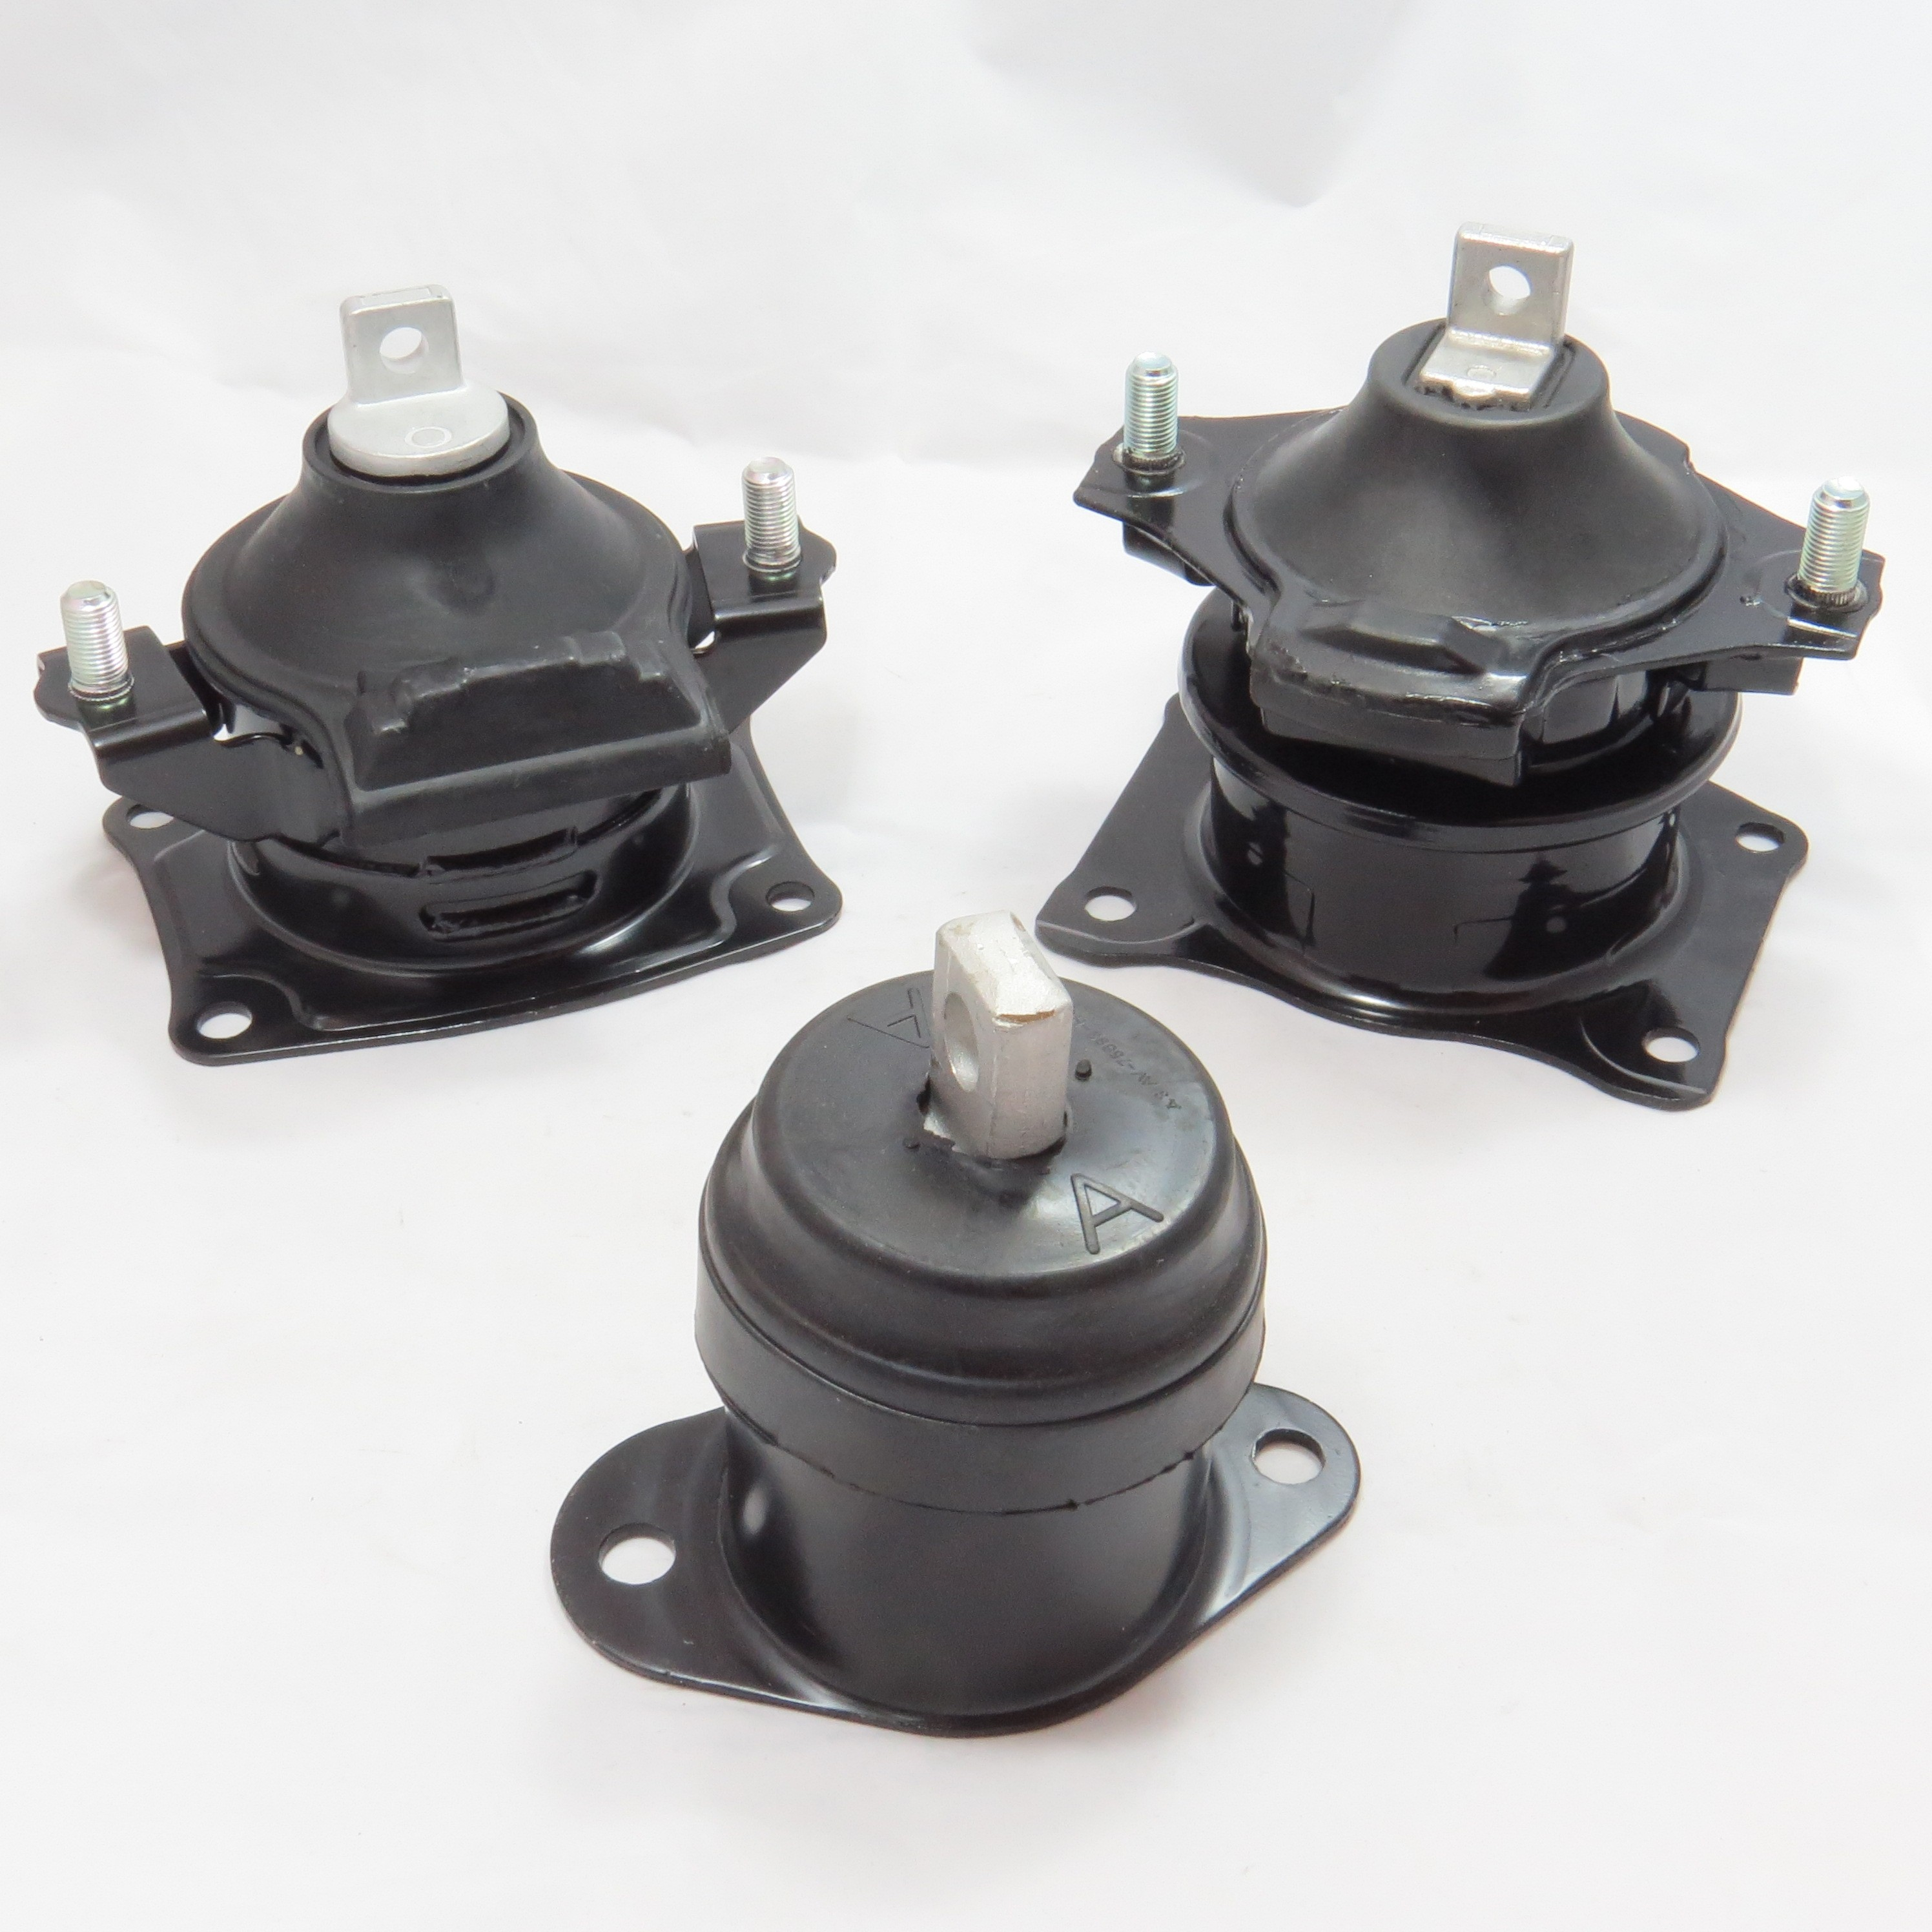 Motor Mount Set Of 3 For Accord & TSX 2.4L Automatic